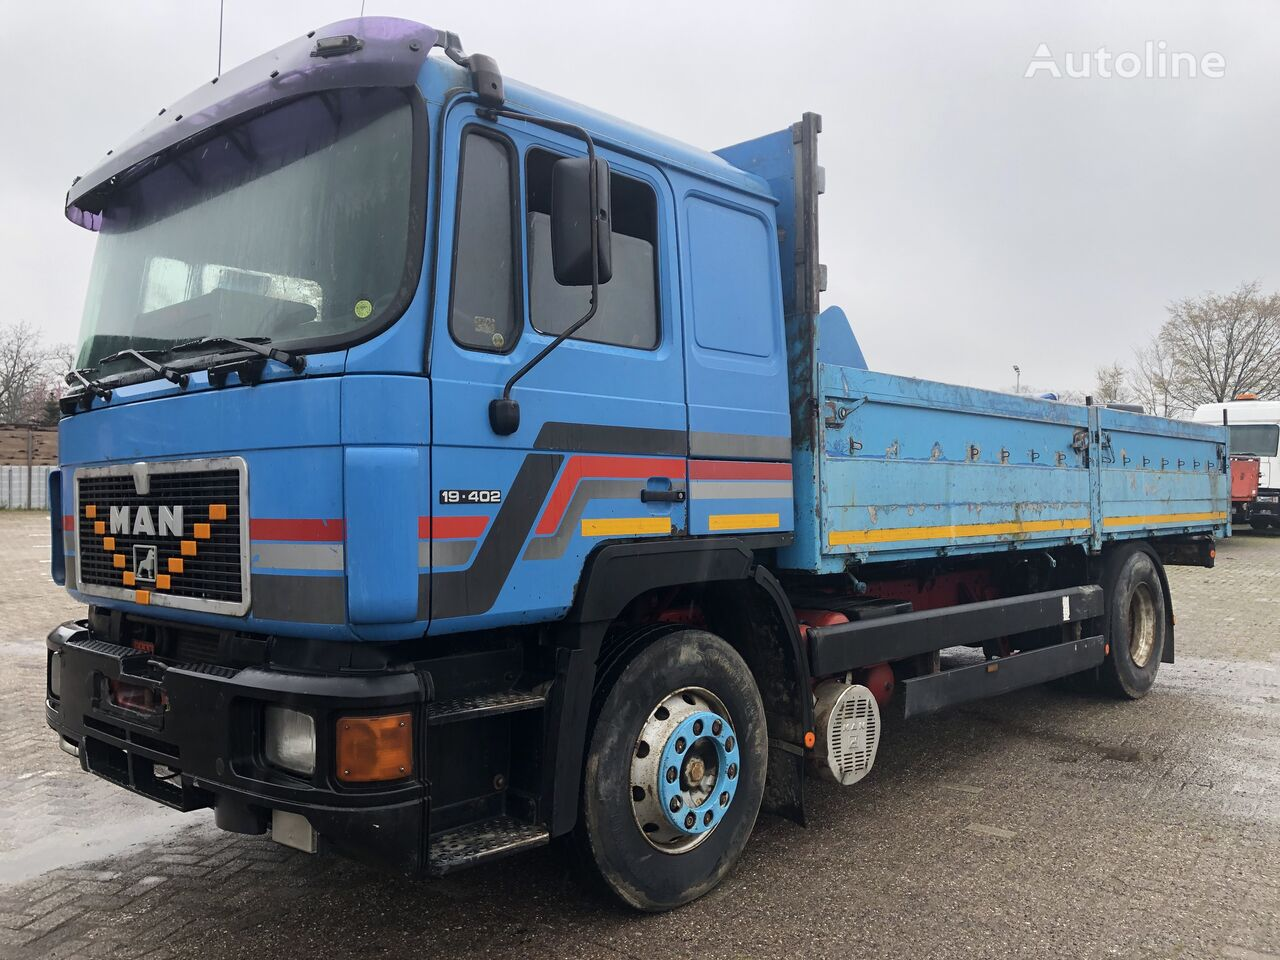 MAN 19.402 flatbed truck